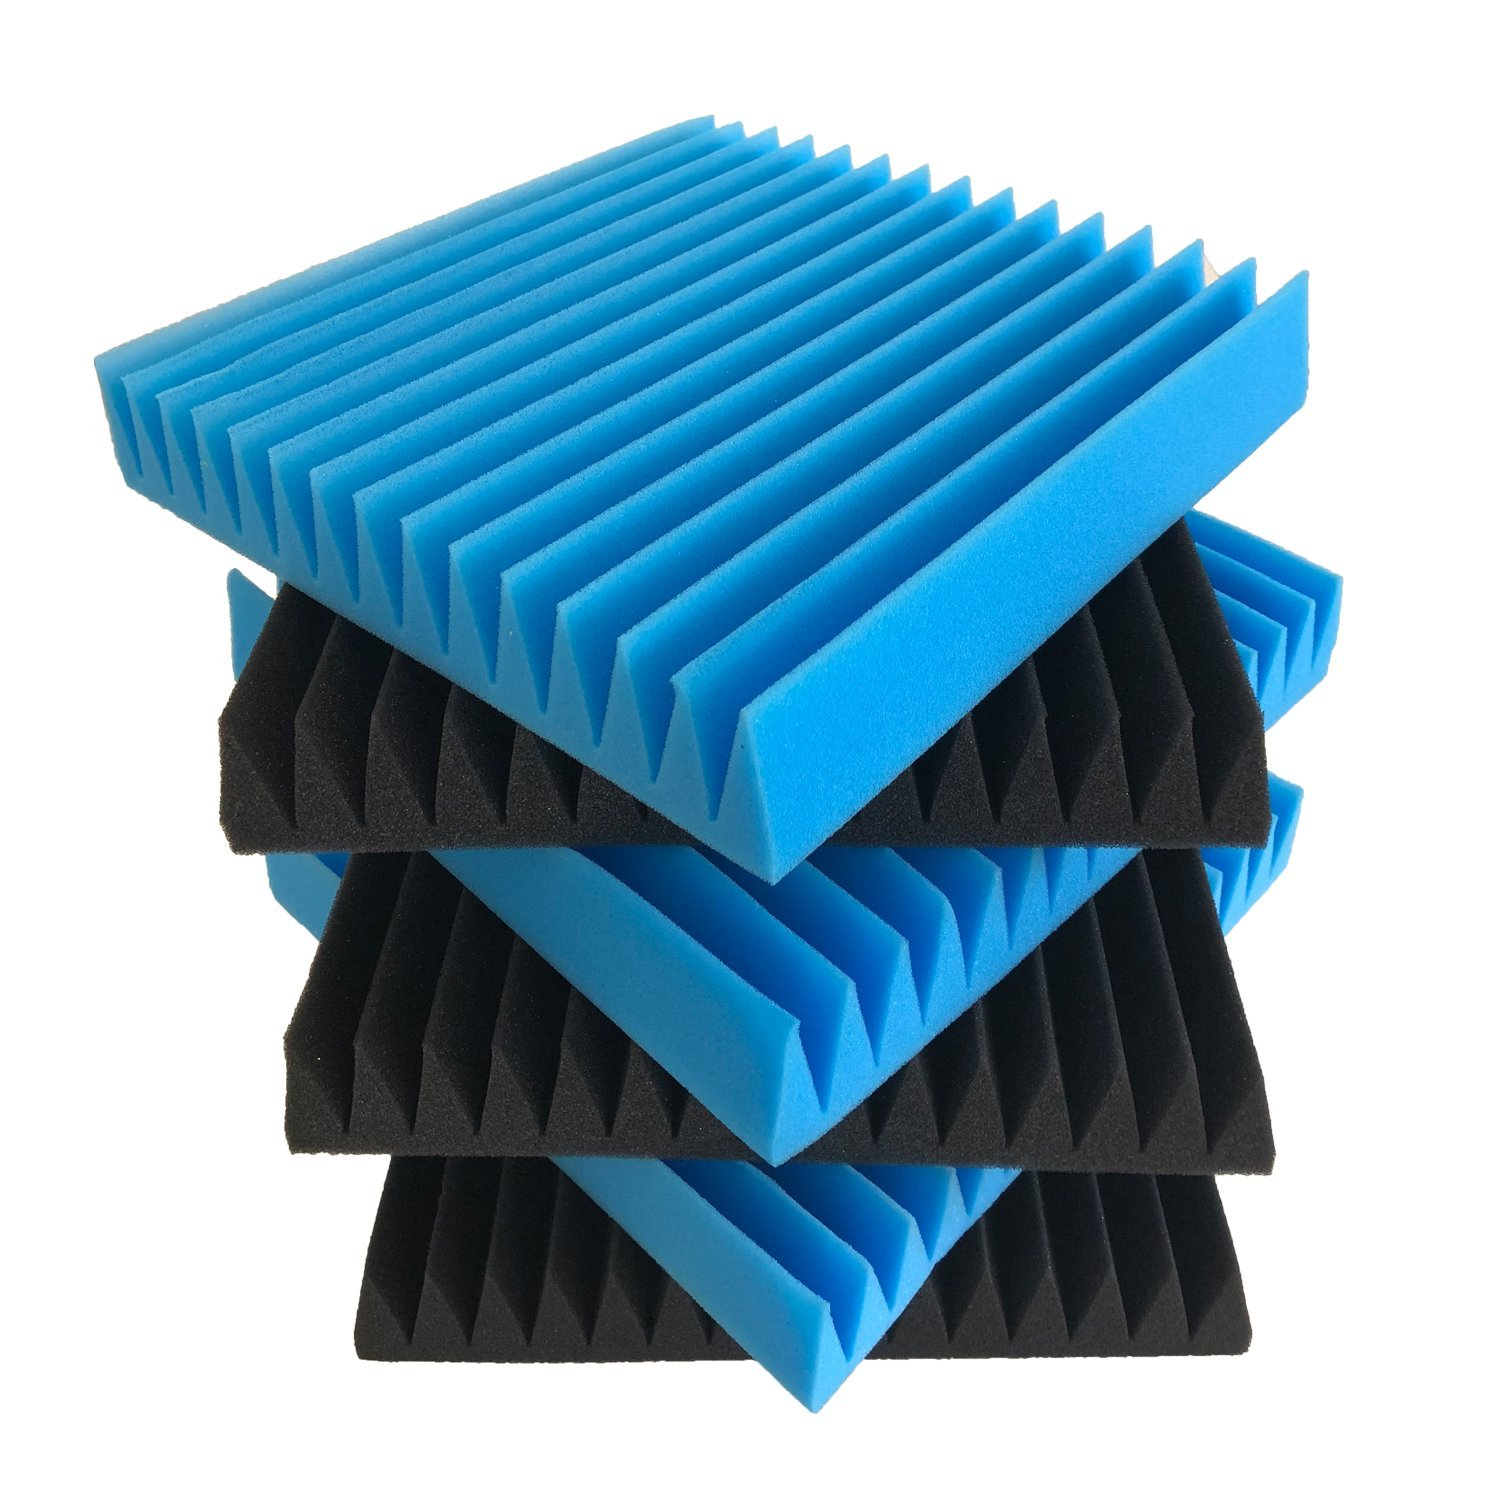 Beefoam Acoustic Panels (6-Pack) Sound-Proofing Foam Baffling | Enhanced Wedges for Noise Cancelling & Sound Absorbing Coverage | Studio, Stage, Theater, Vocal Booth 4334435584